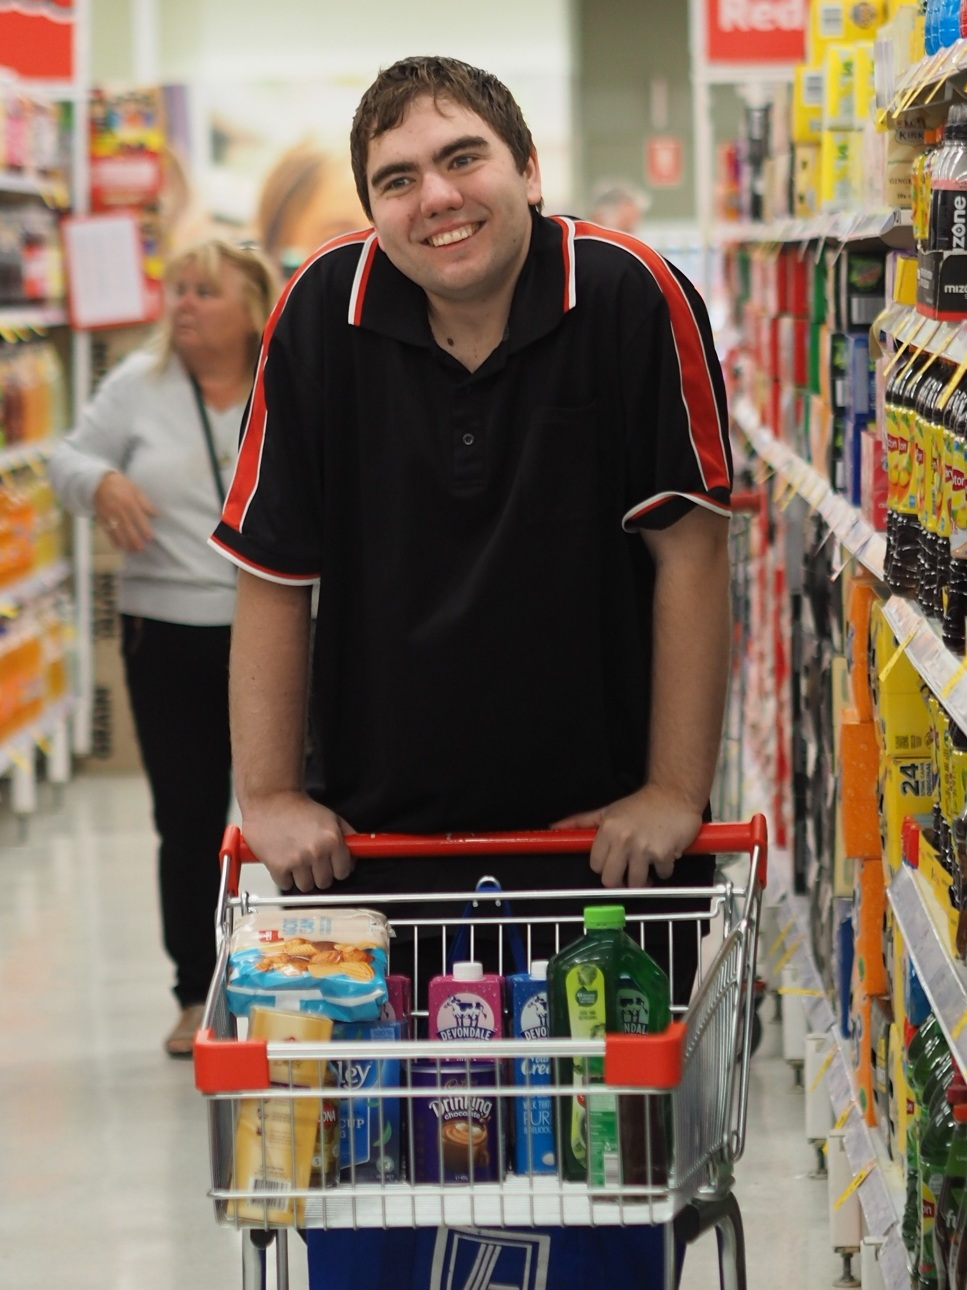 Josh grocery shopping